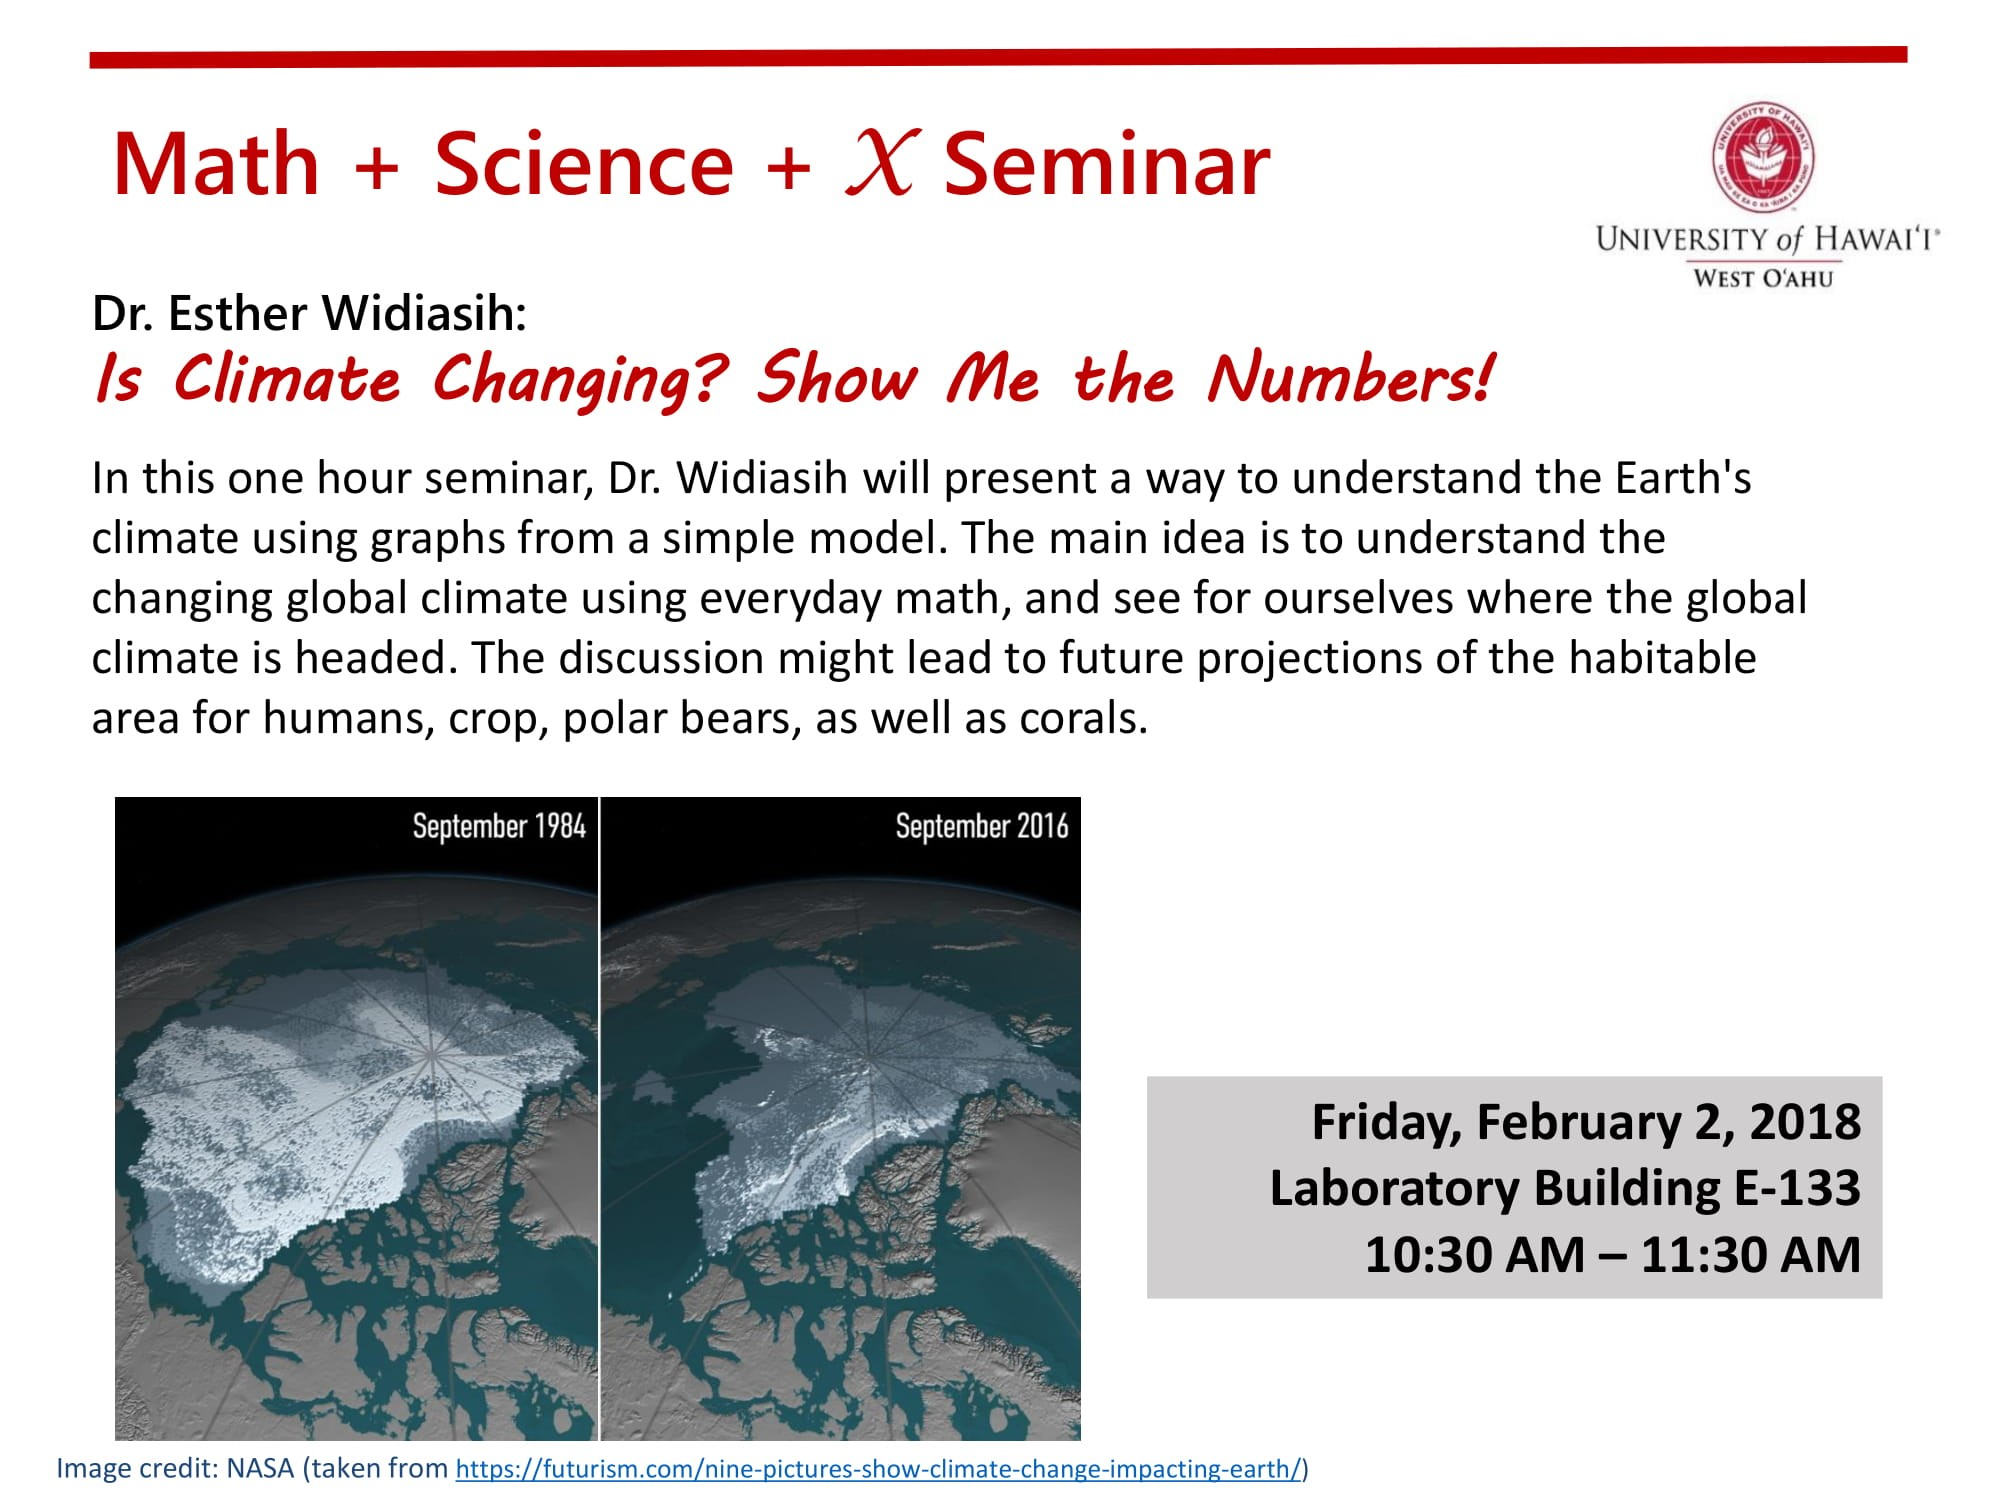 Flyer for Math + Science Talk that gives same information as is in article